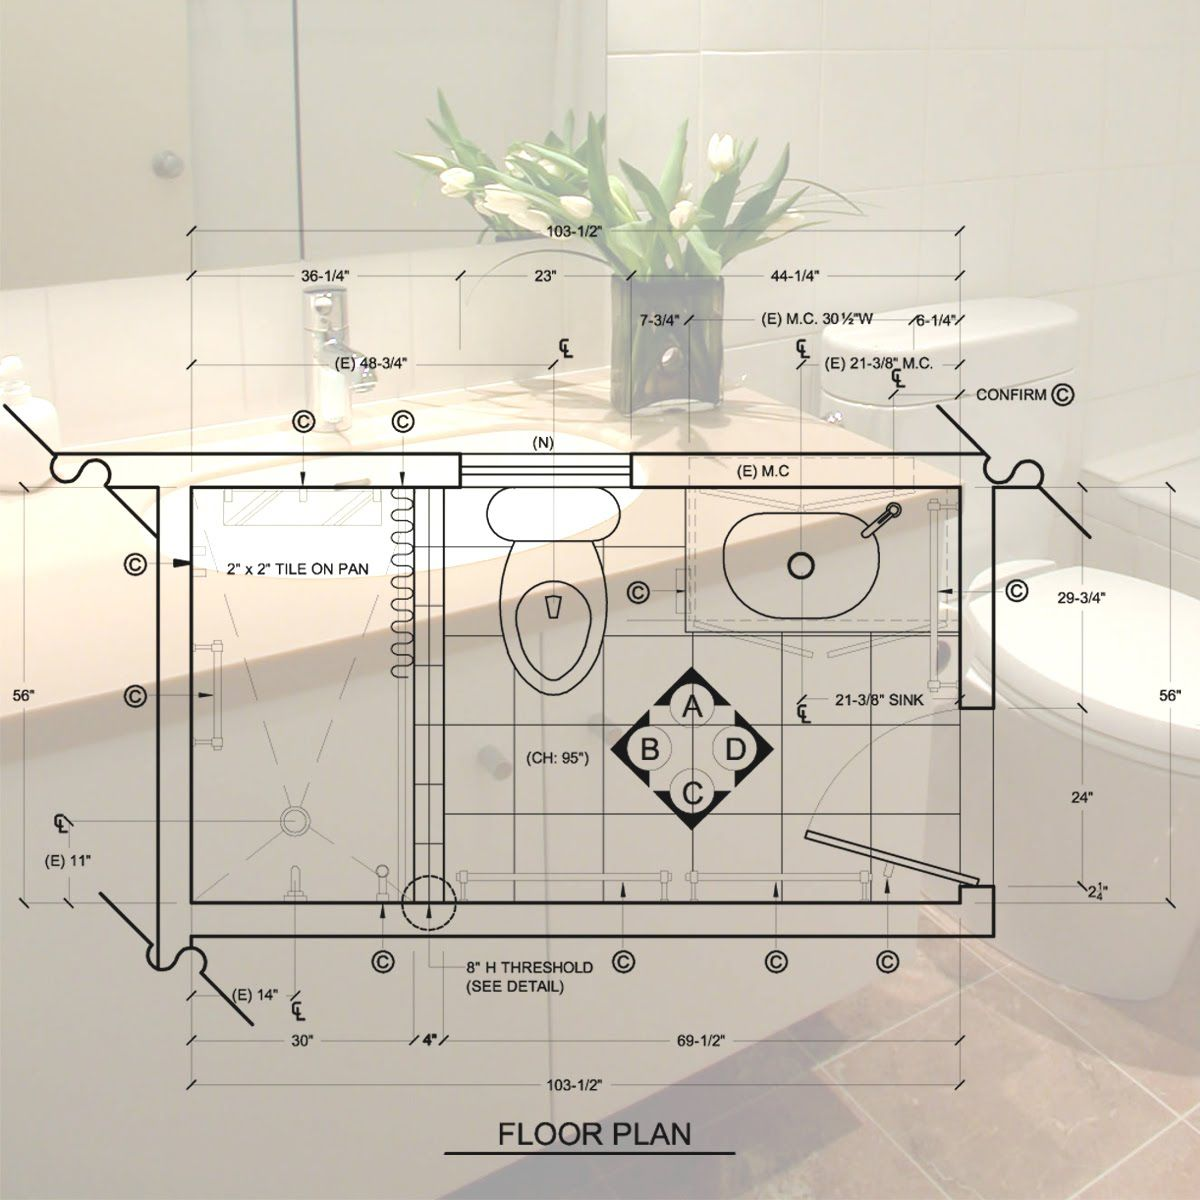 8 x 7 bathroom layout ideas | ideas | Pinterest | Bathroom layout ...